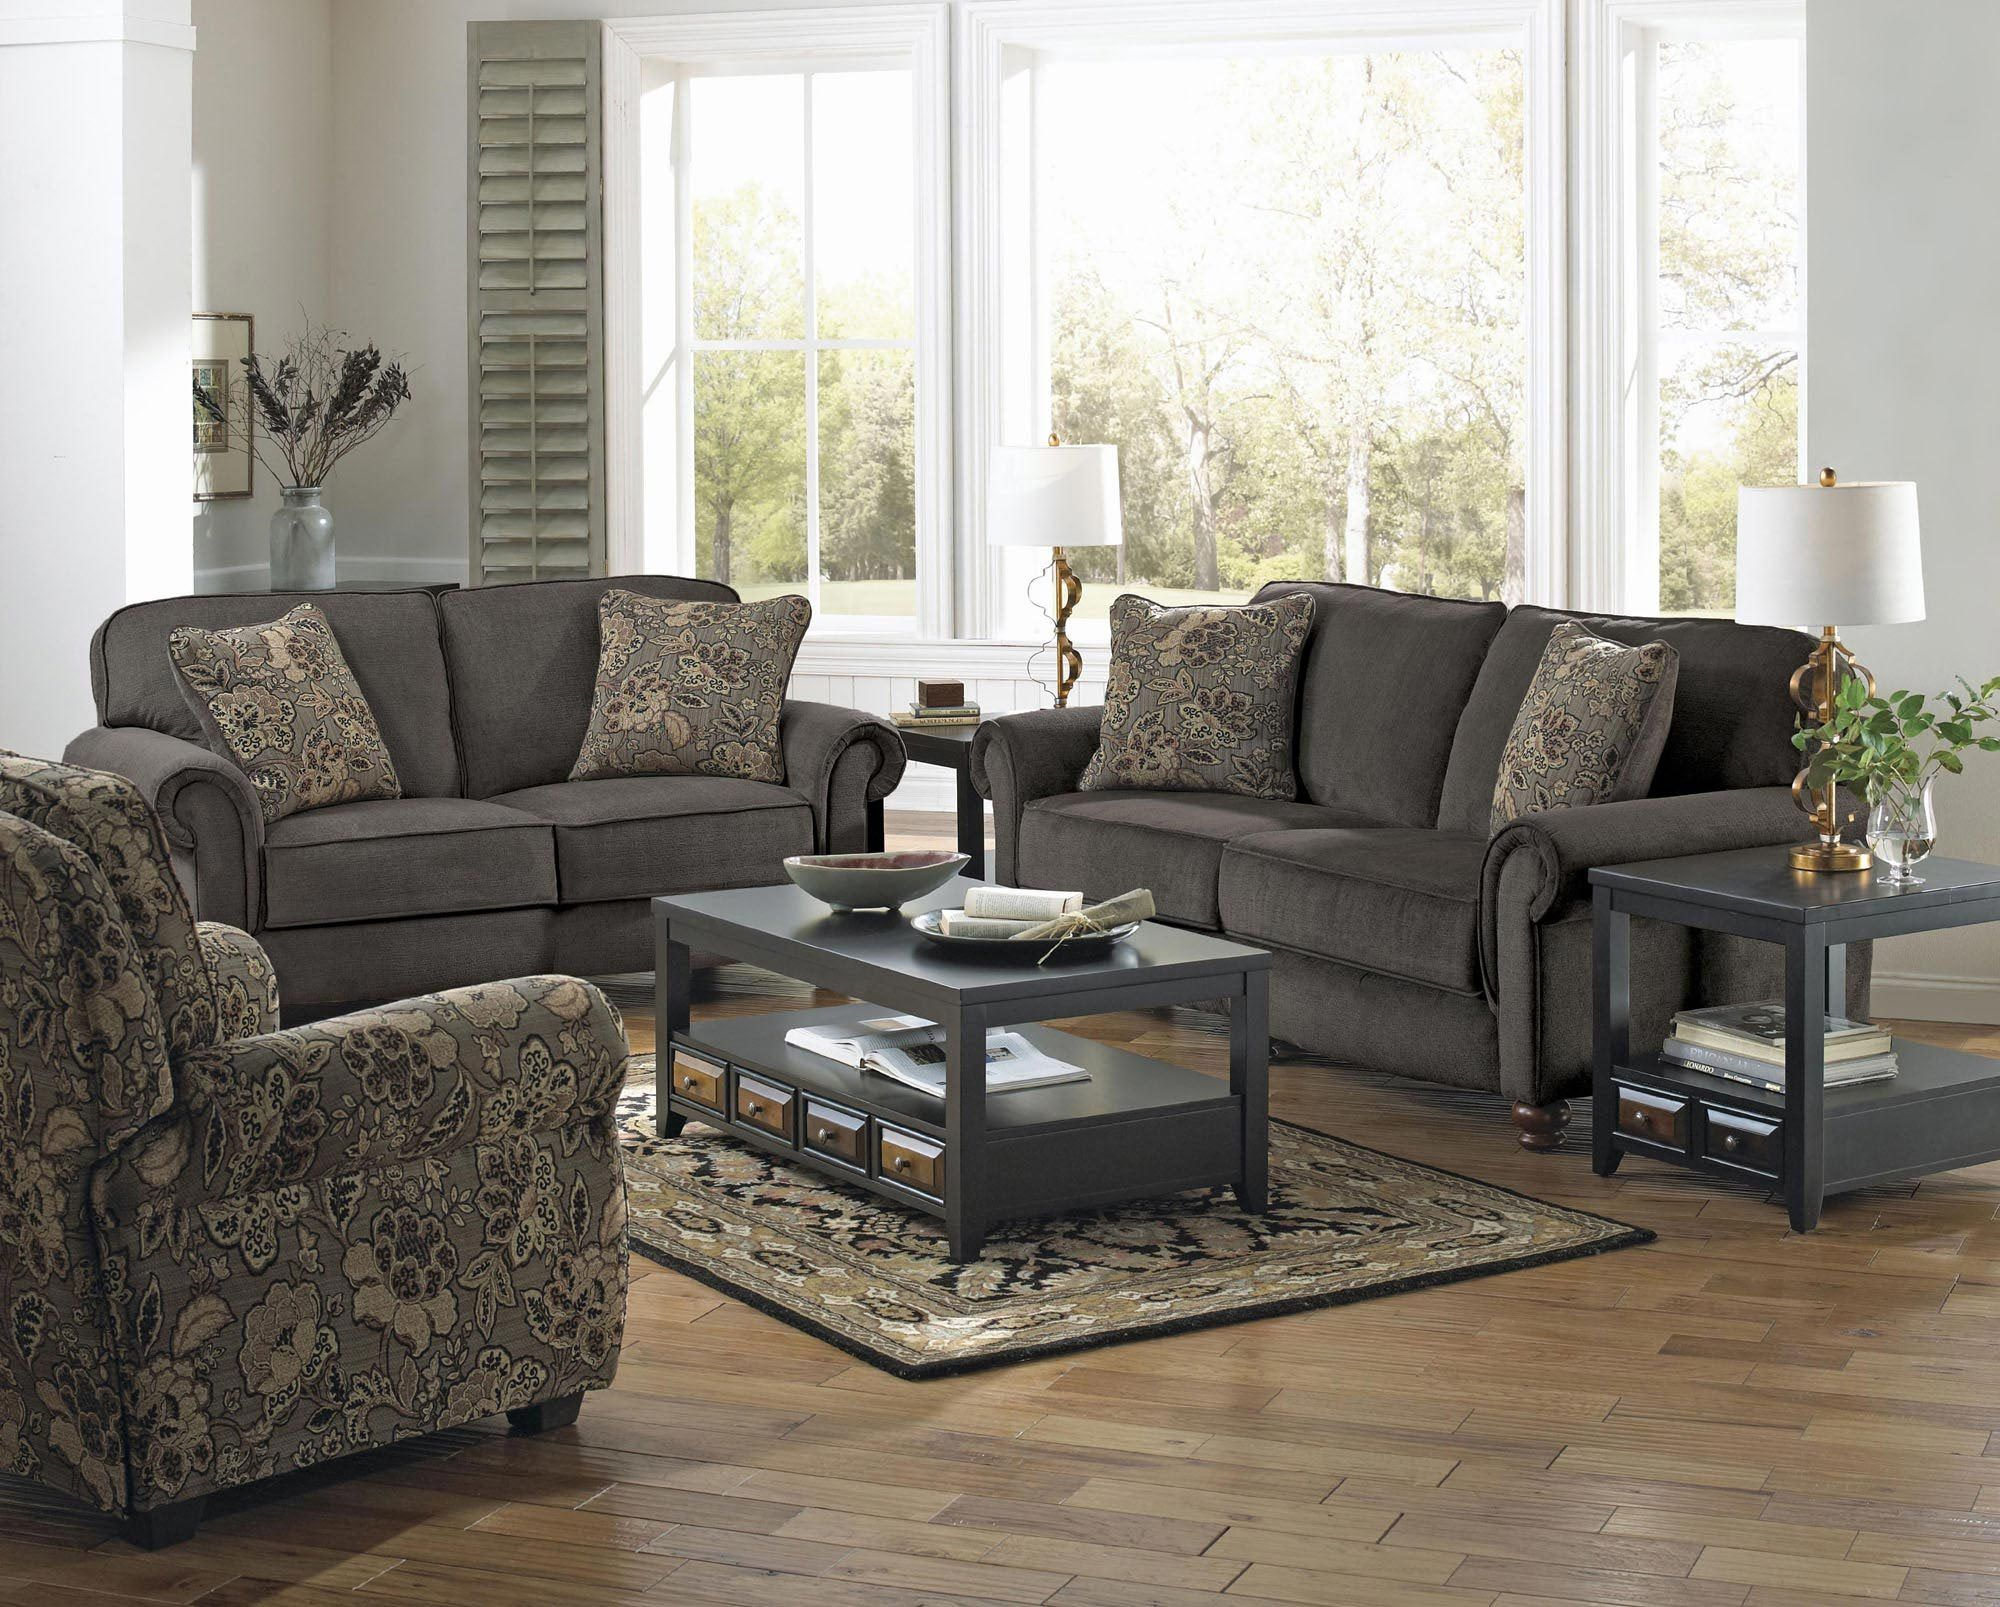 downing sofa set in charcoal jackson furniture home gallery rh pinterest com